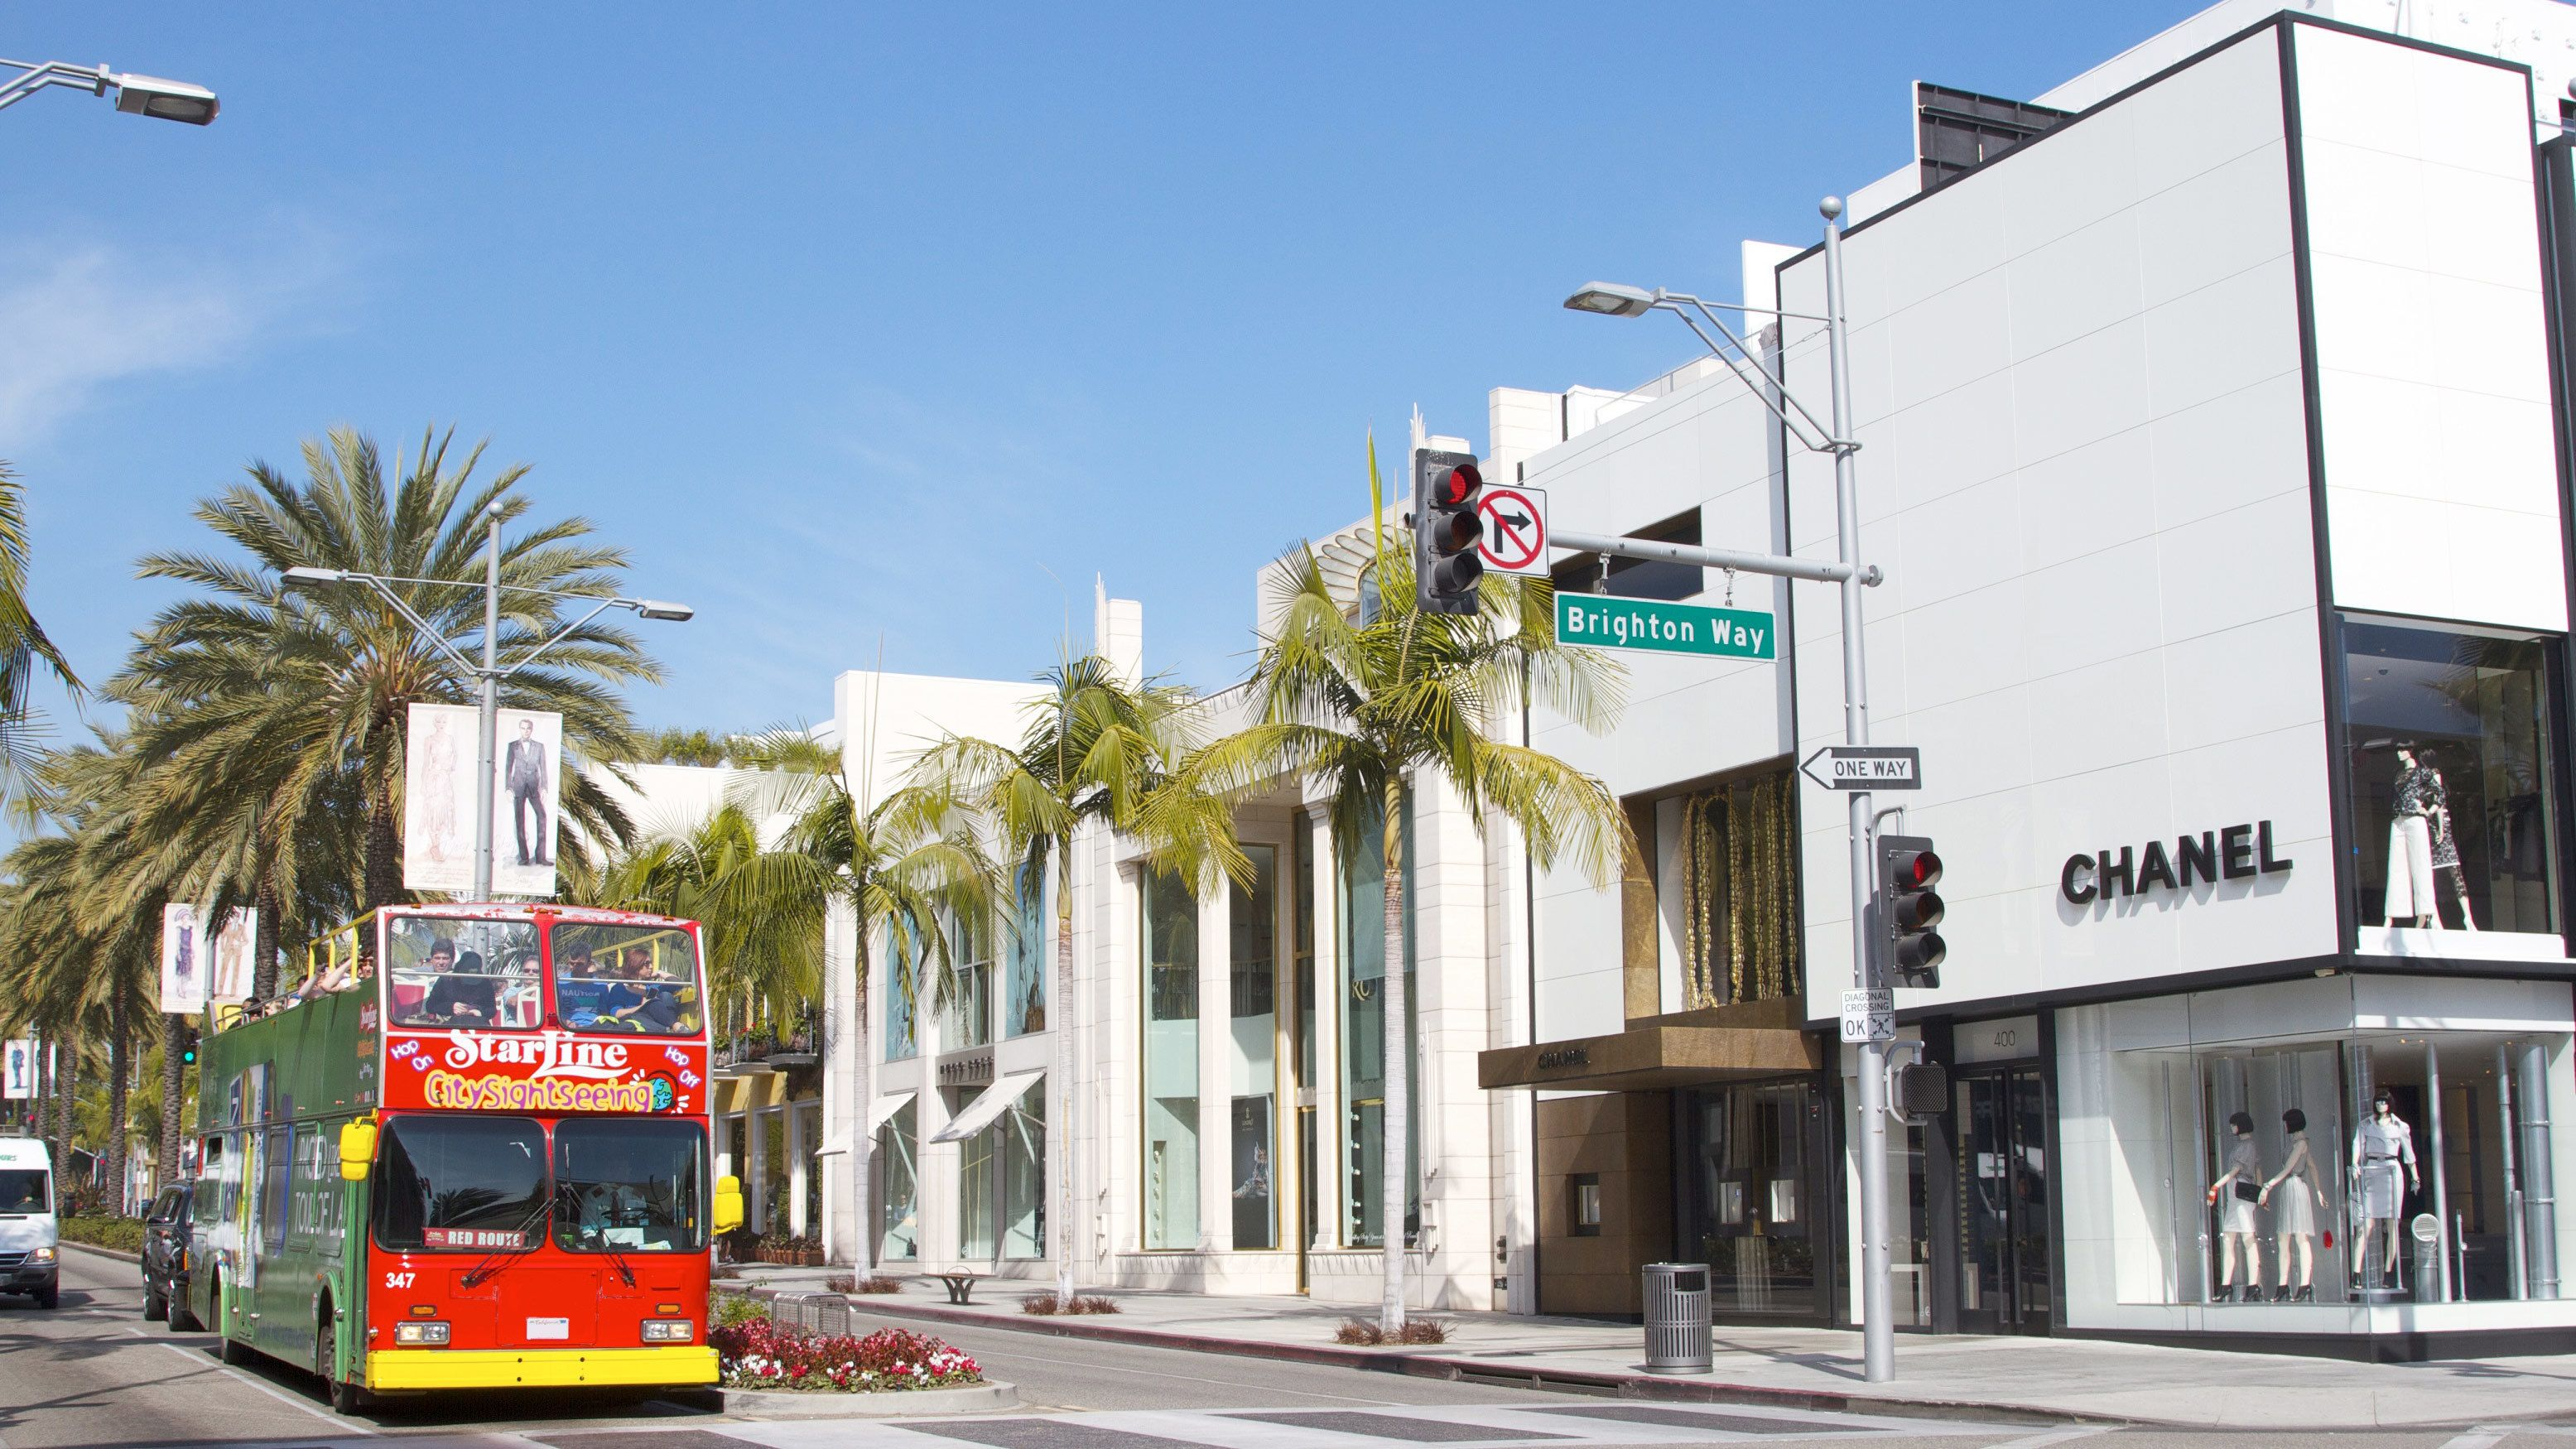 Double decker bus on the streets on Los Angeles in front of a Chanel store on a sunny day